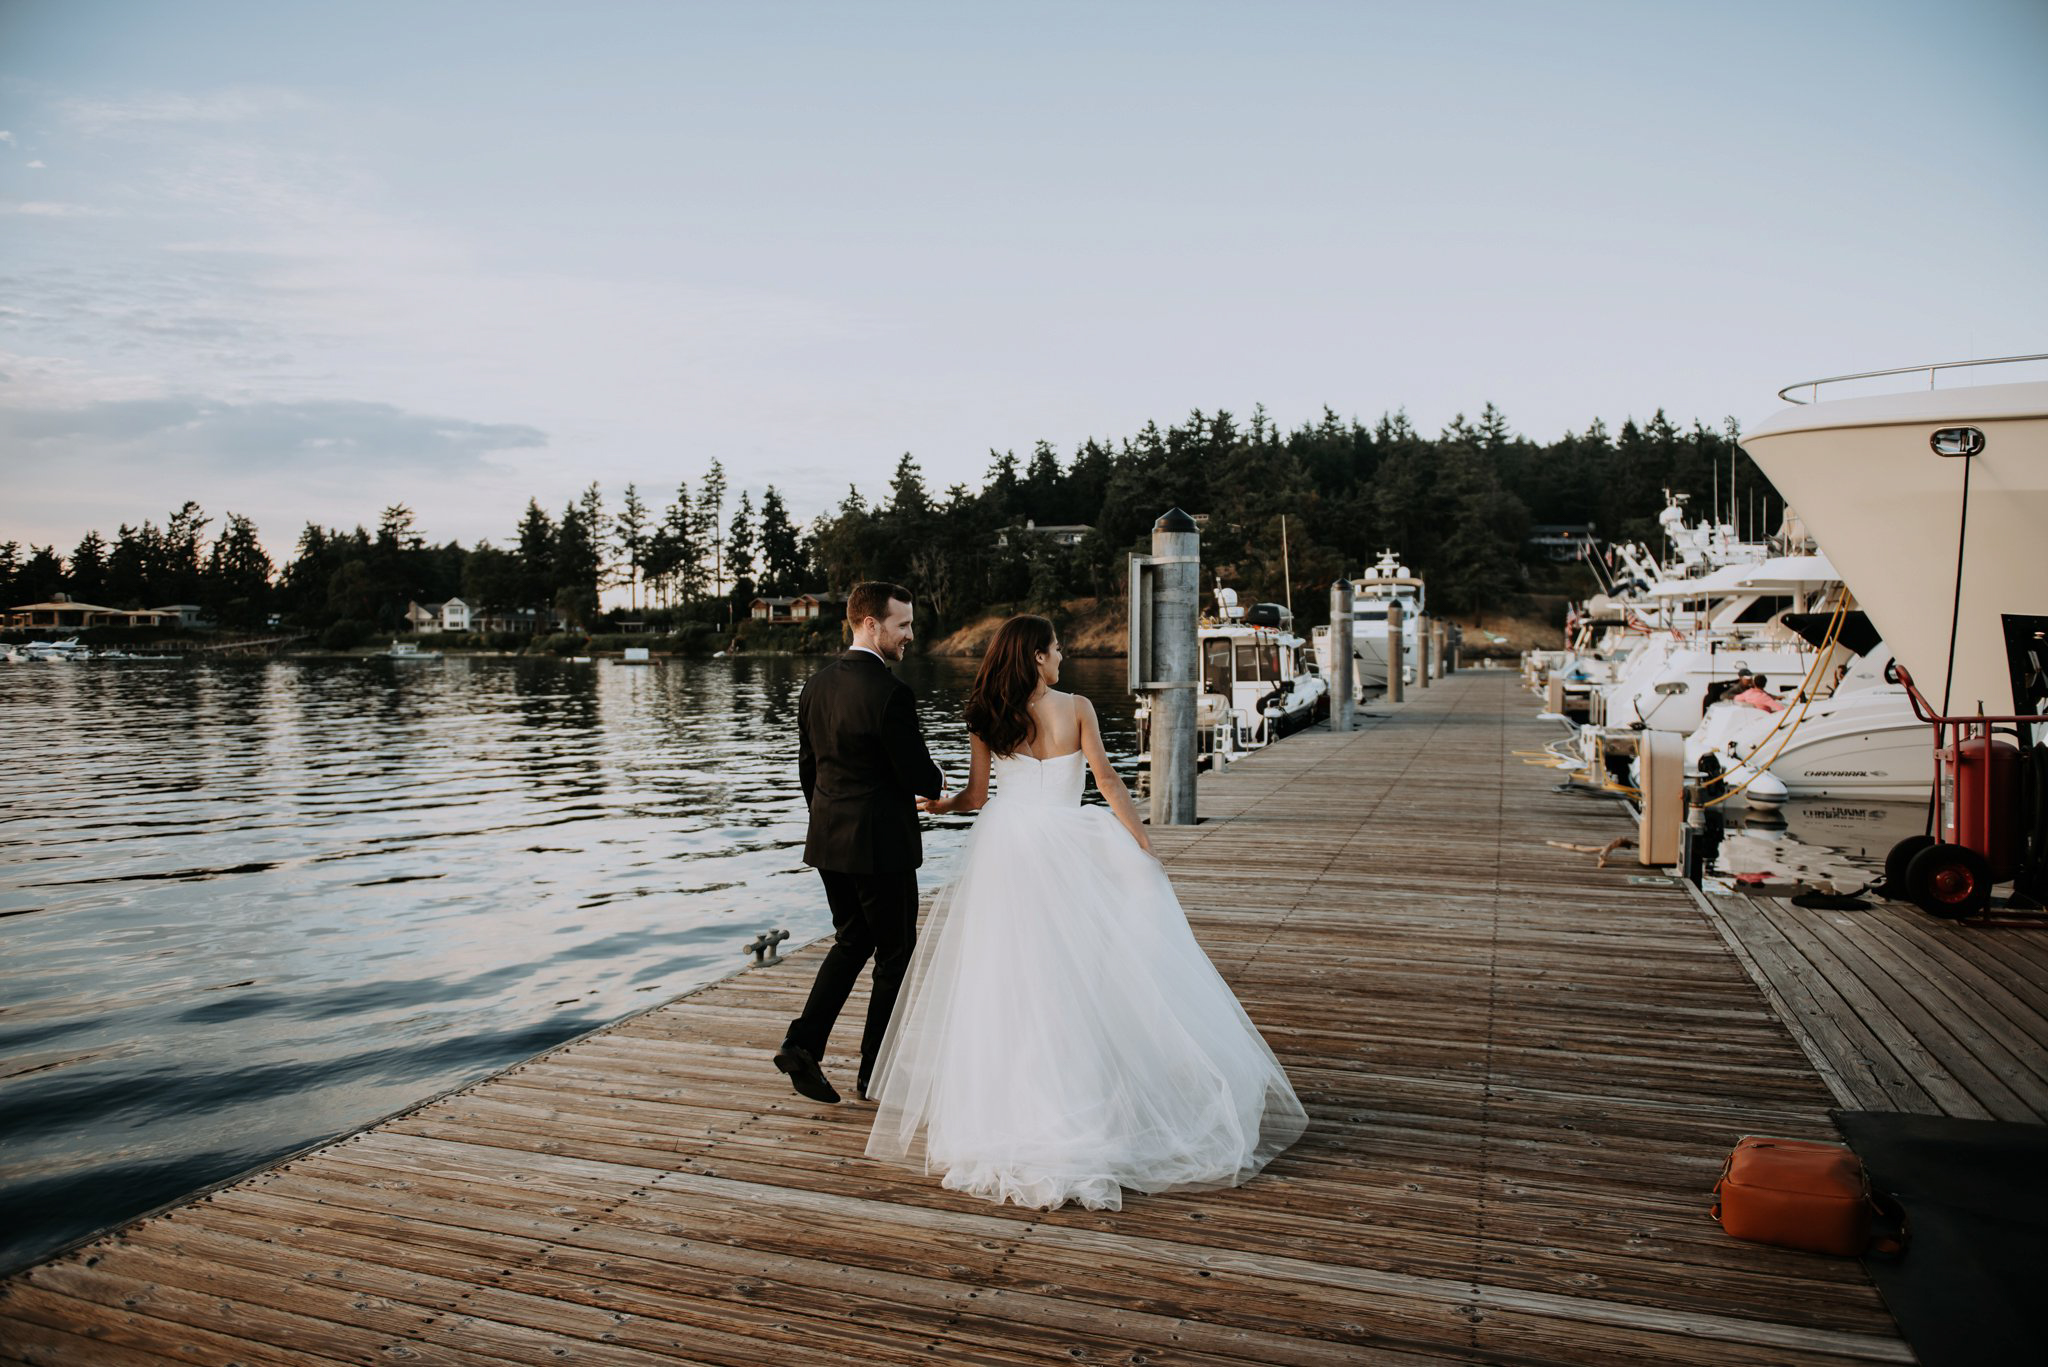 roche-harbor-resort-sand-juan-island-wedding-seattle-wedding-photograher-caitlyn-nikula-149.jpg